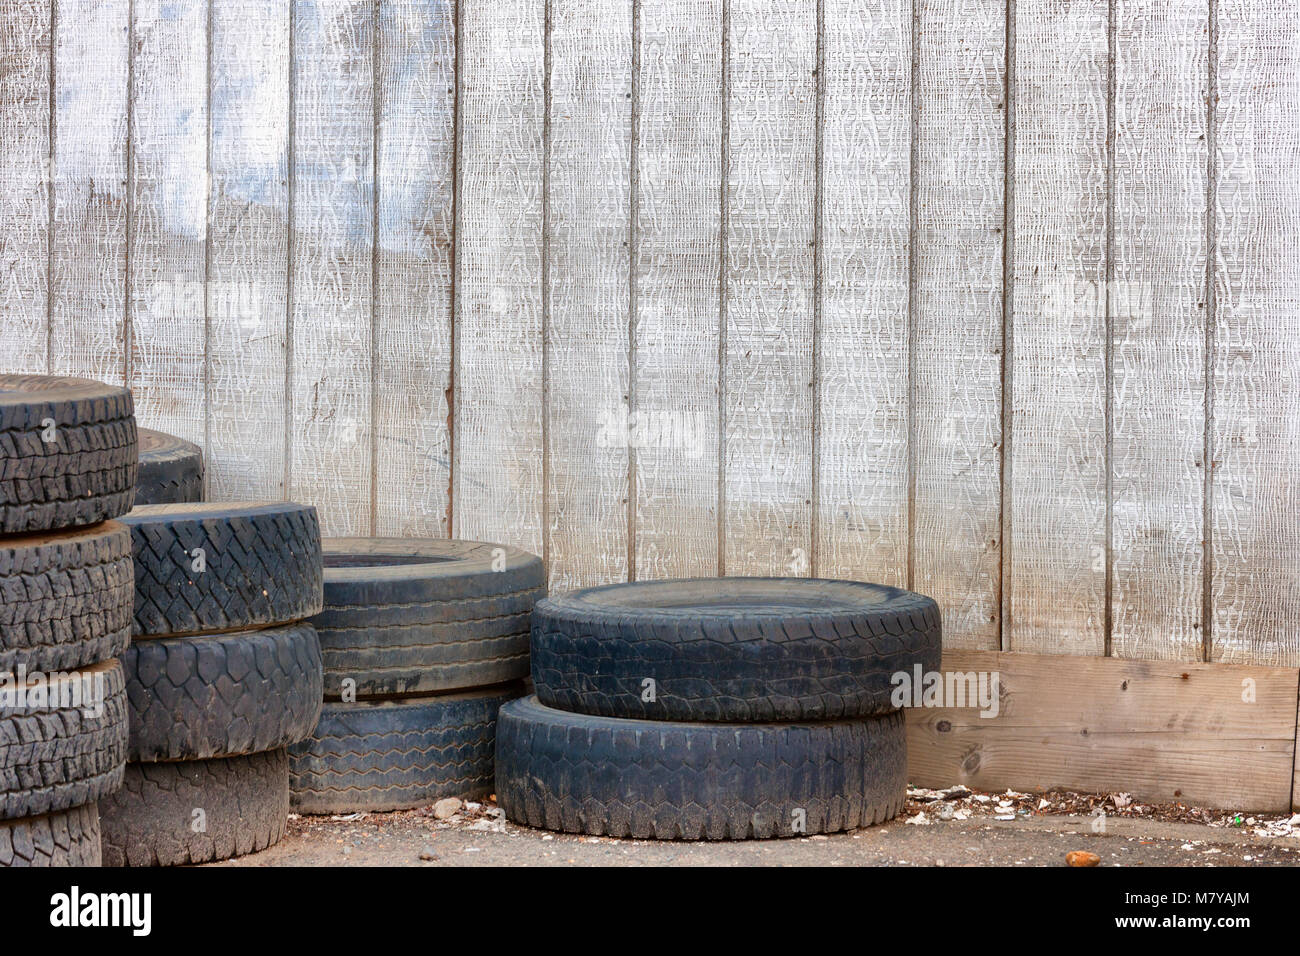 Junk tires stacked and left outside an old building. - Stock Image